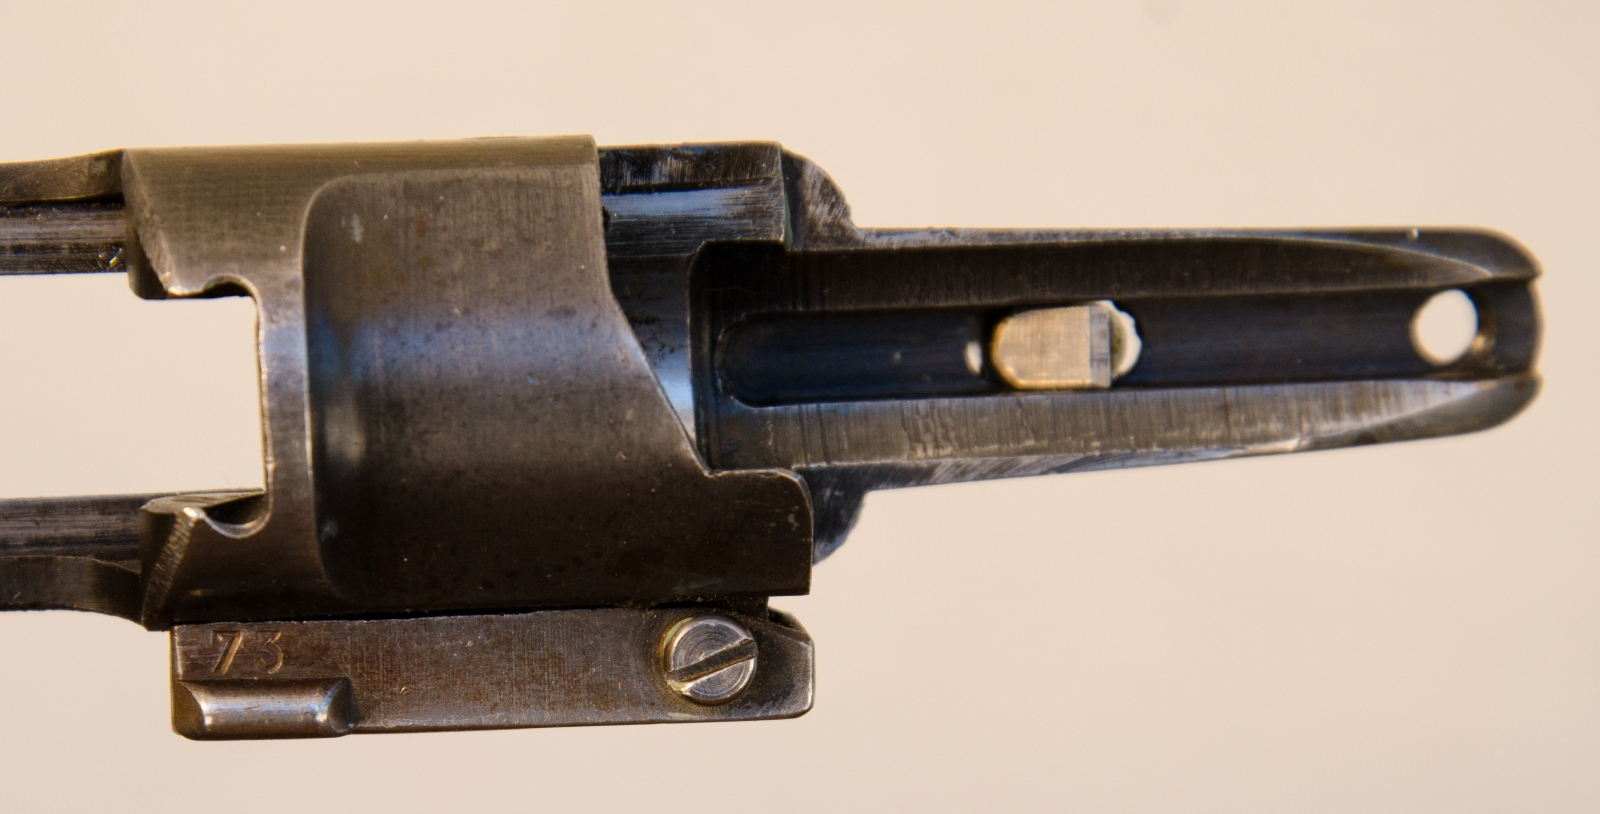 bolt release showing matching s/n